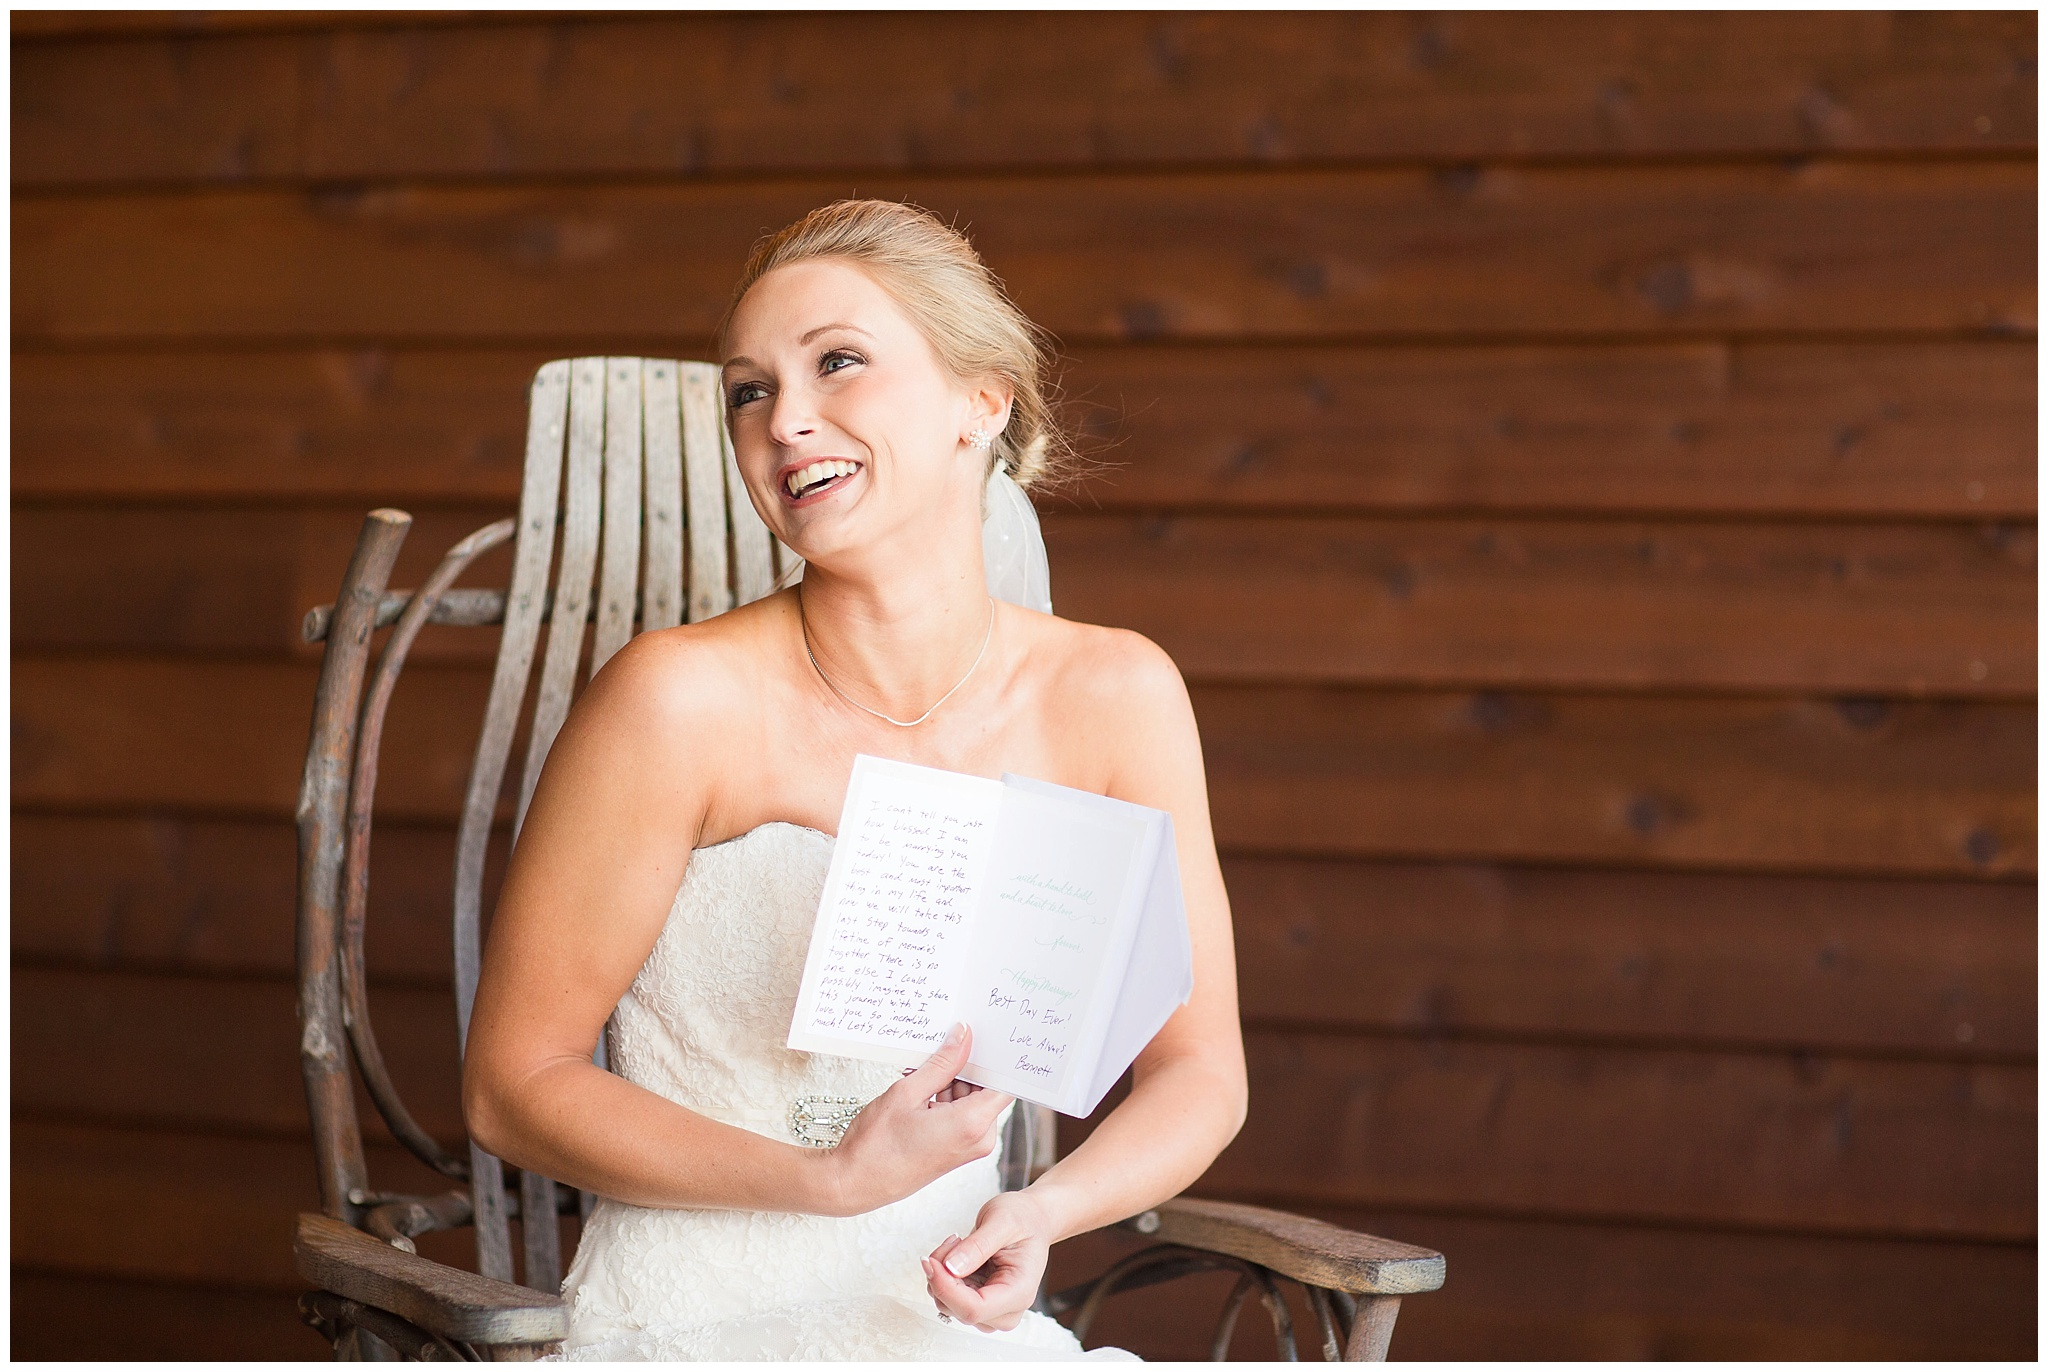 3 Tips For Writing Your Wedding Day Letter to Your Future Spouse ...